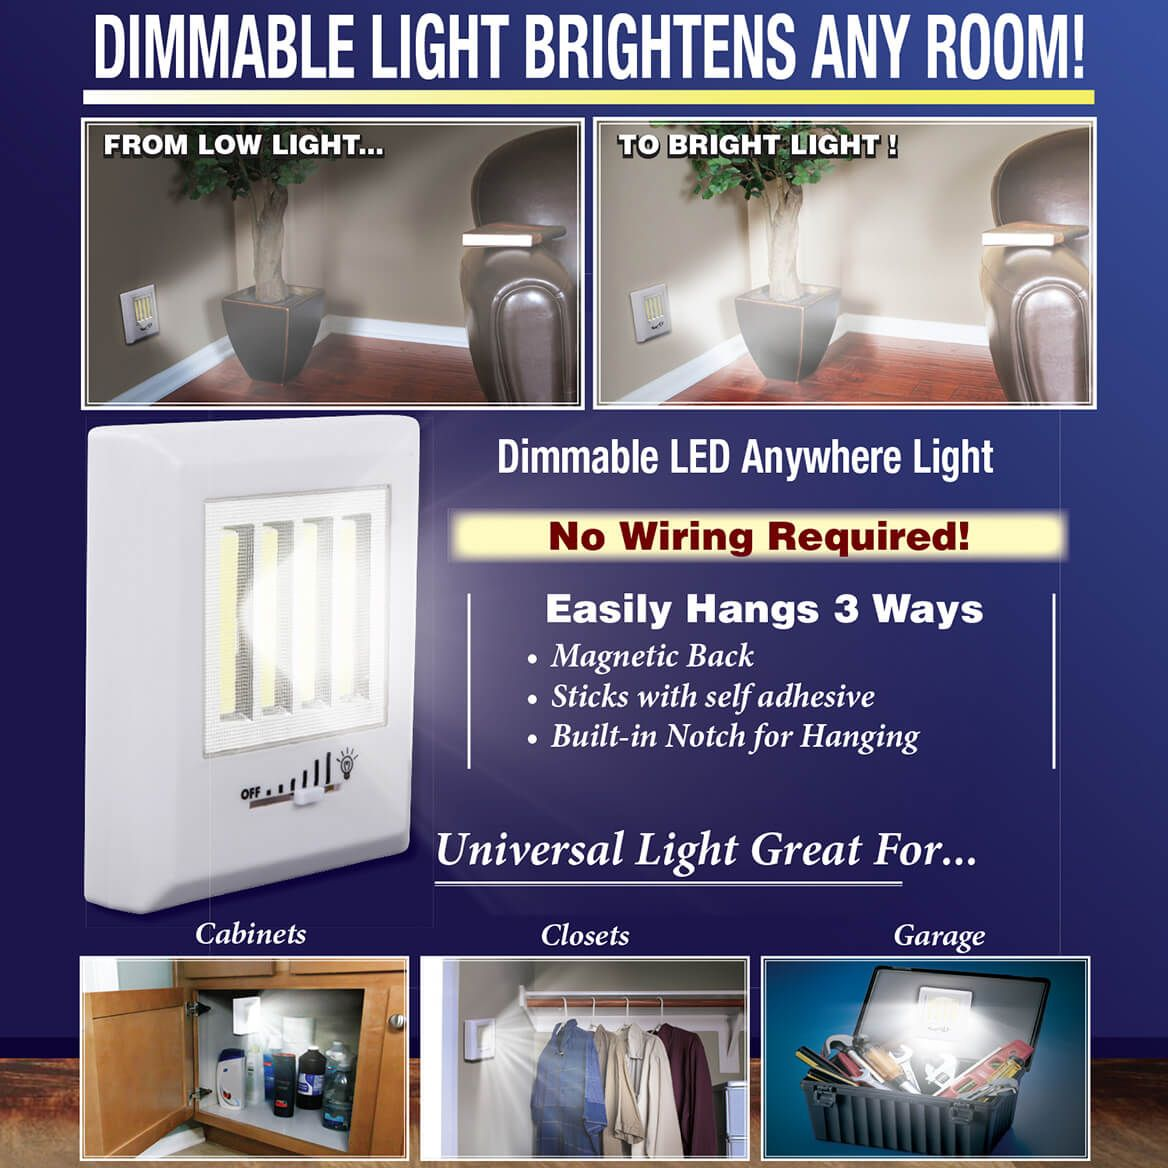 Dimmable LED Anywhere Light-369866